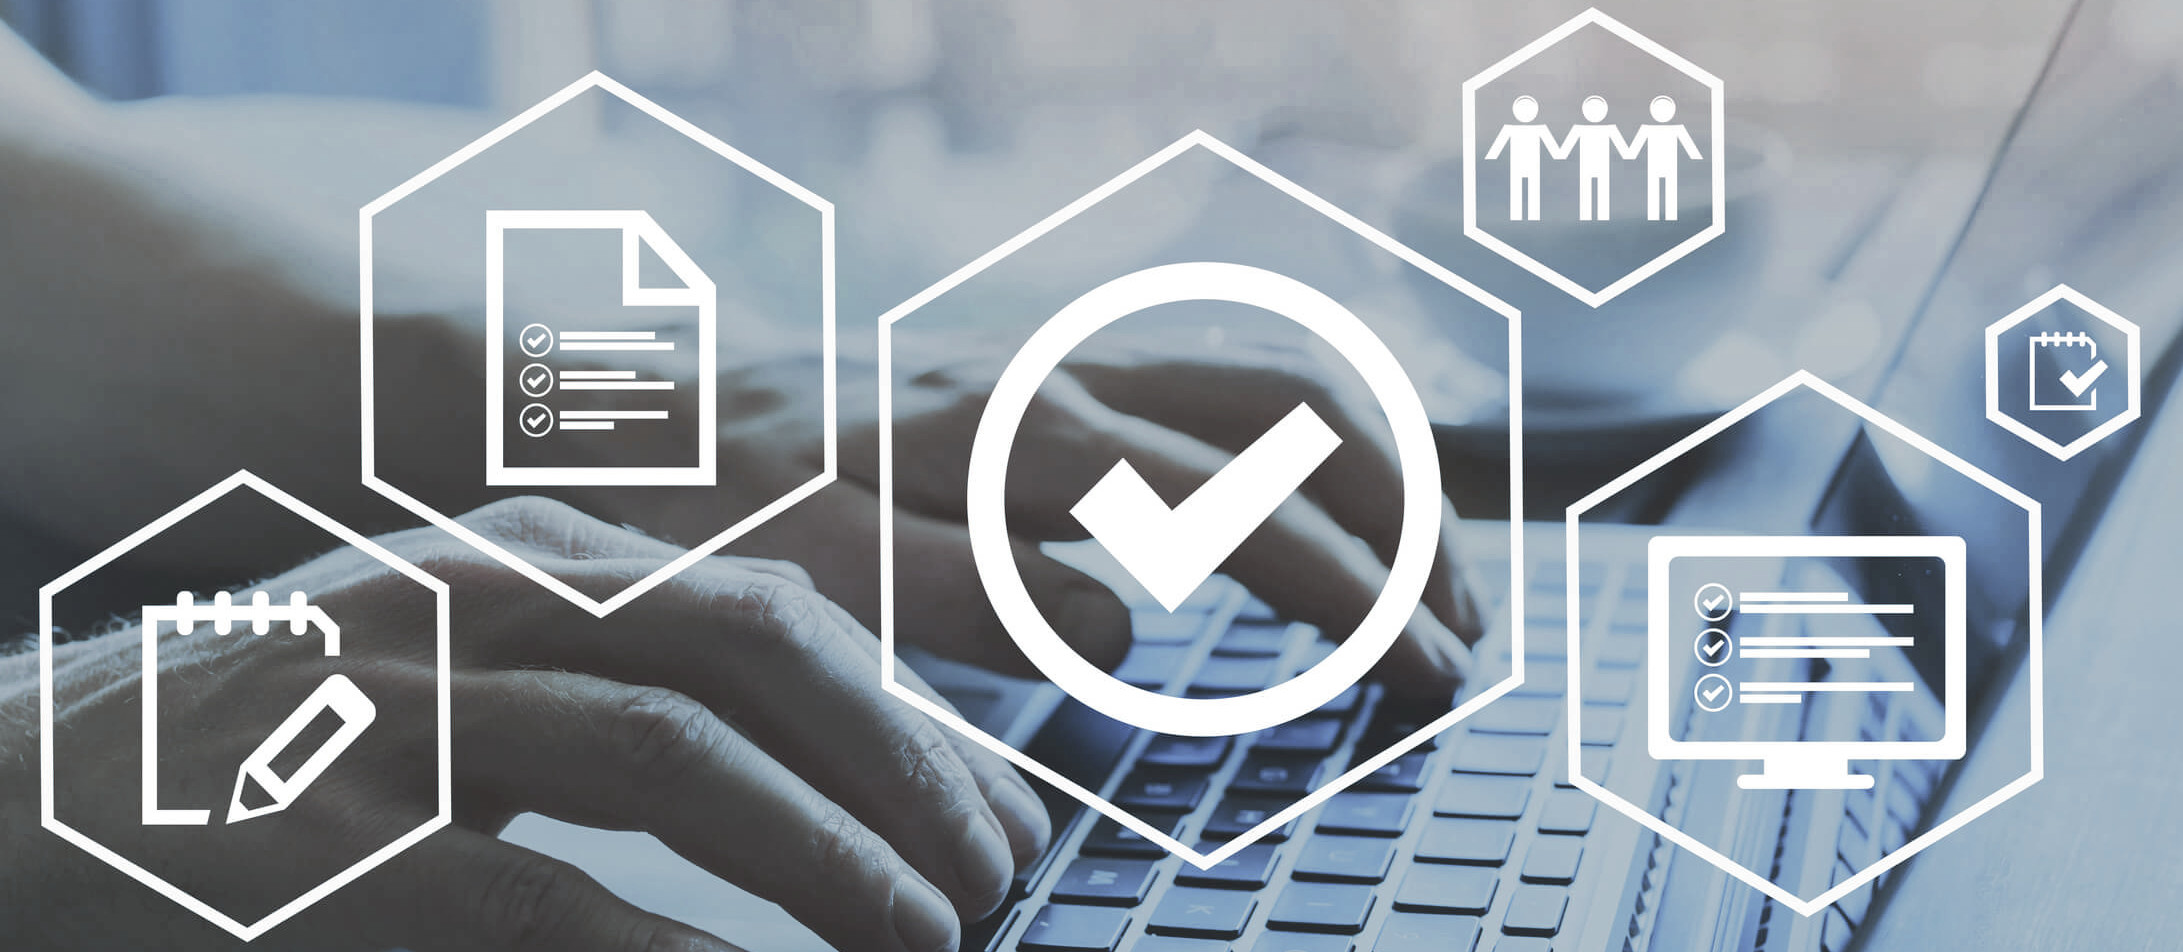 data room compliance certification security